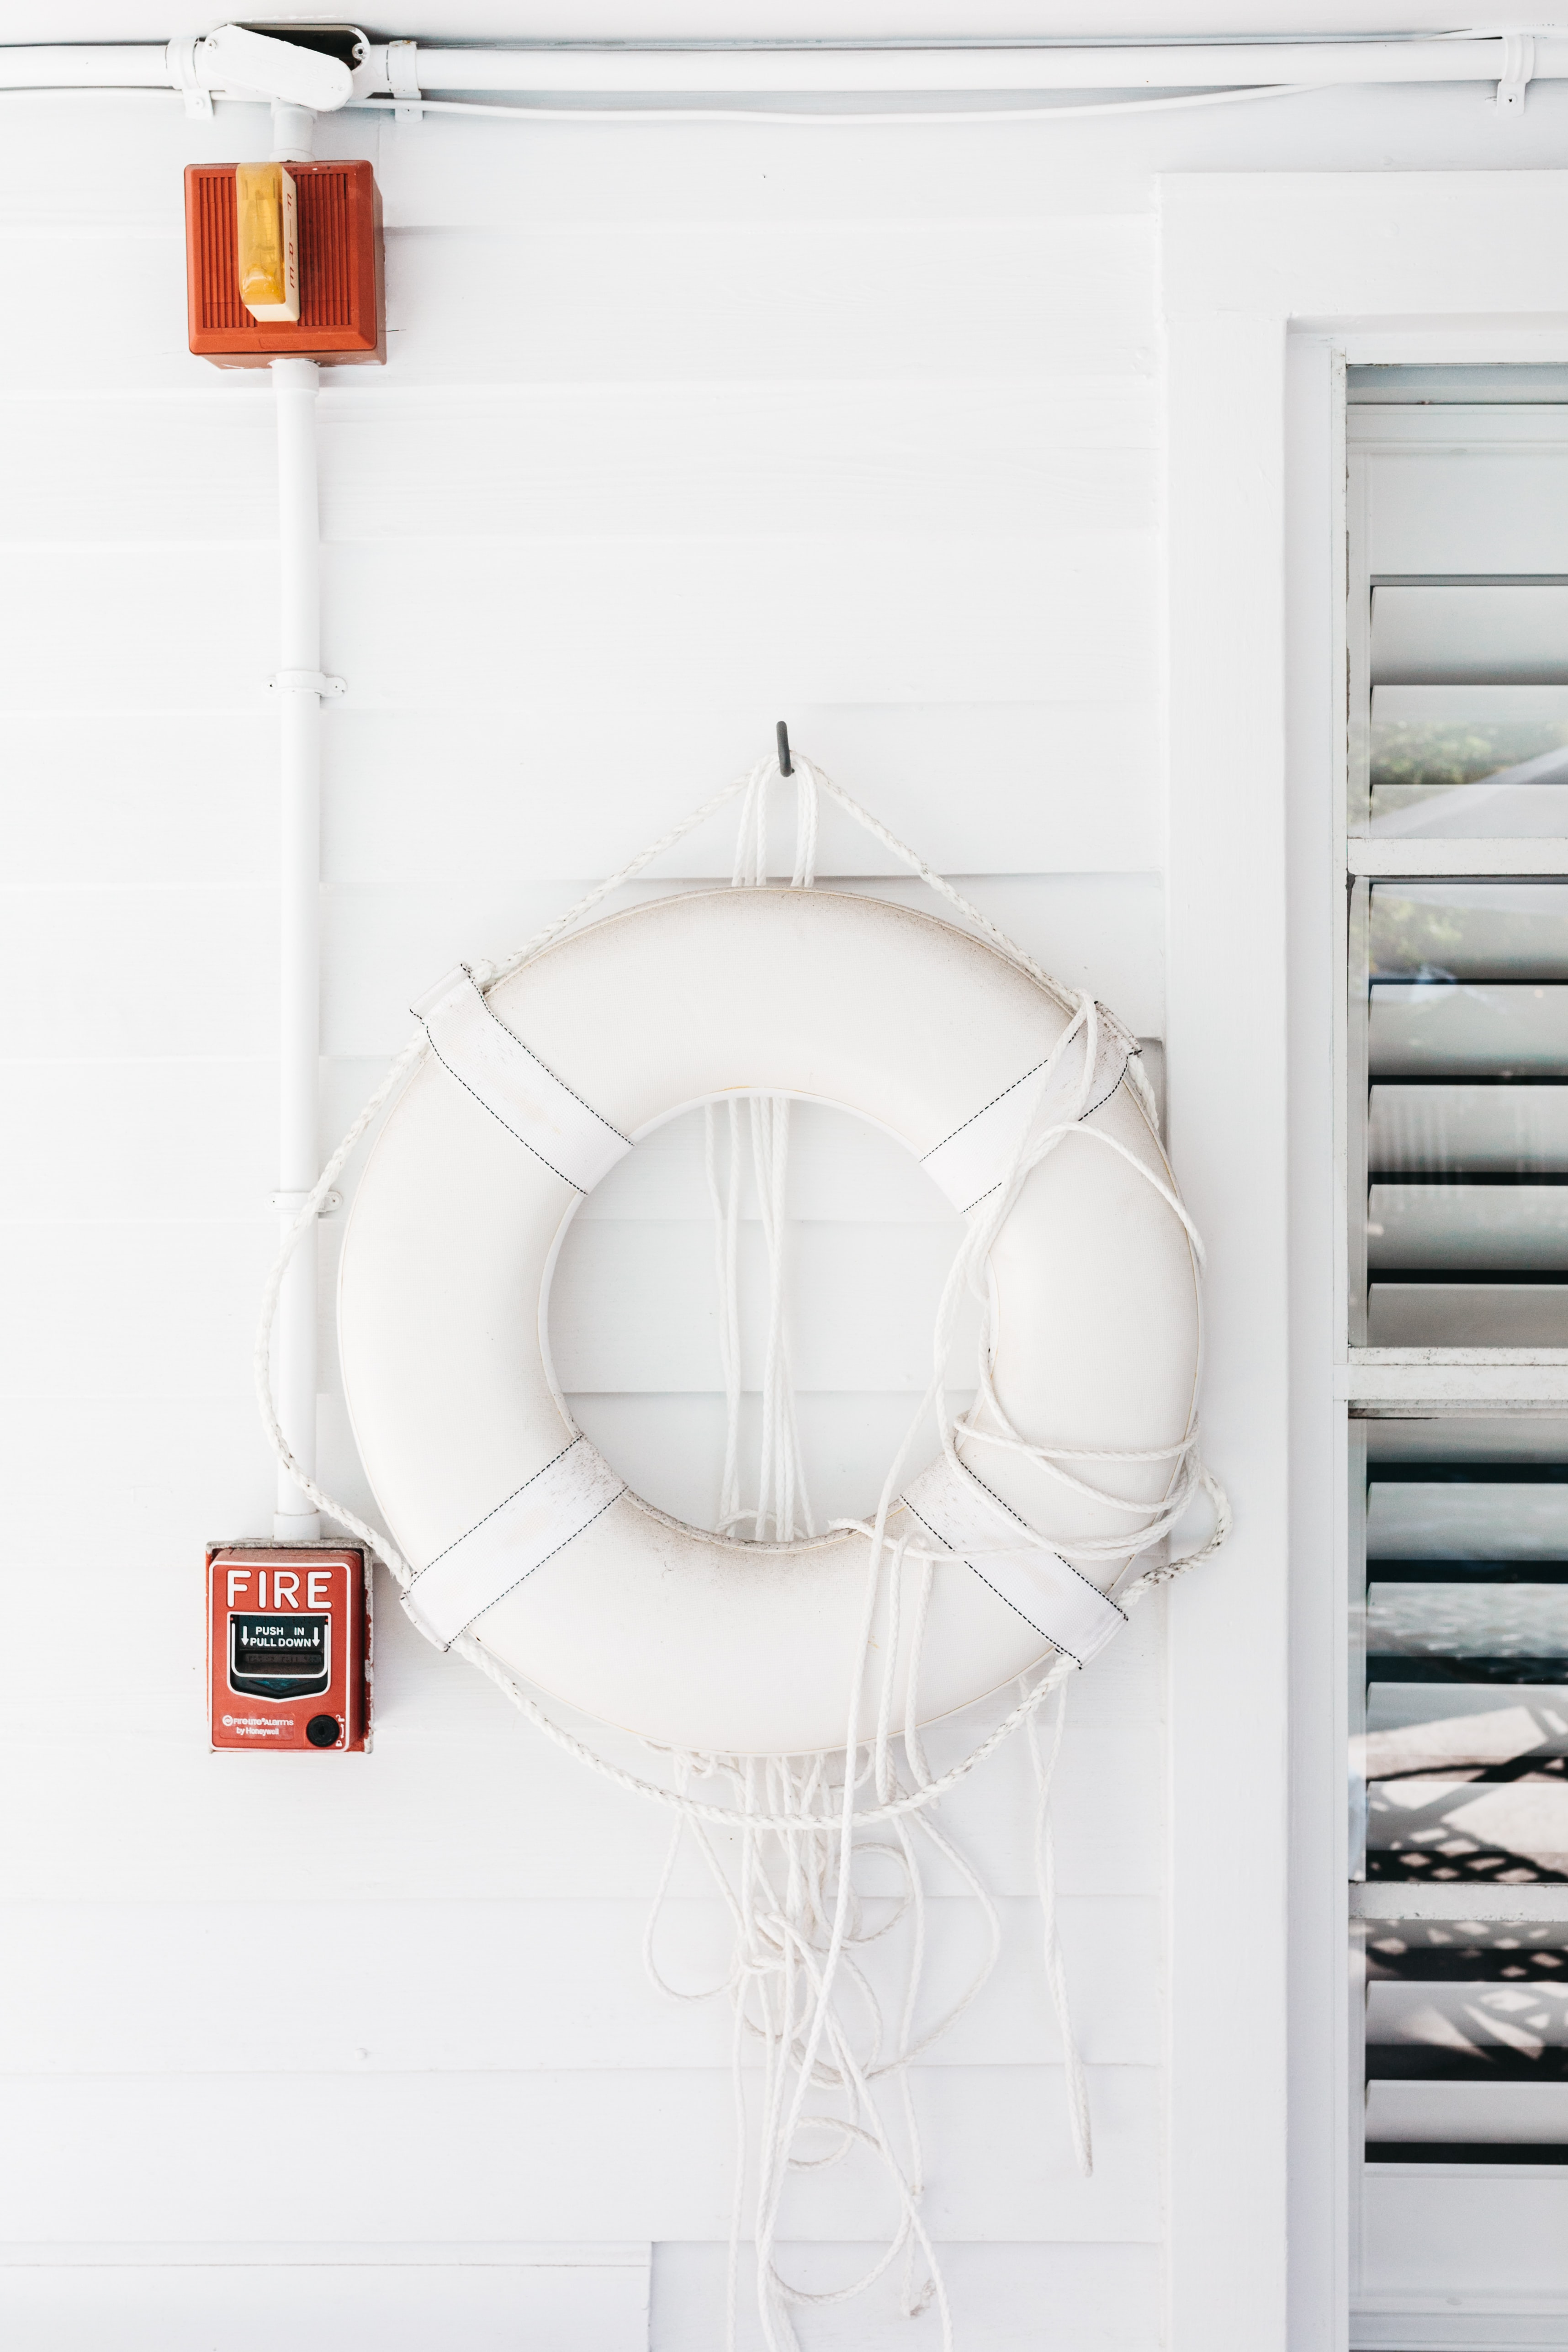 A white life belt on a white wooden wall next to a window